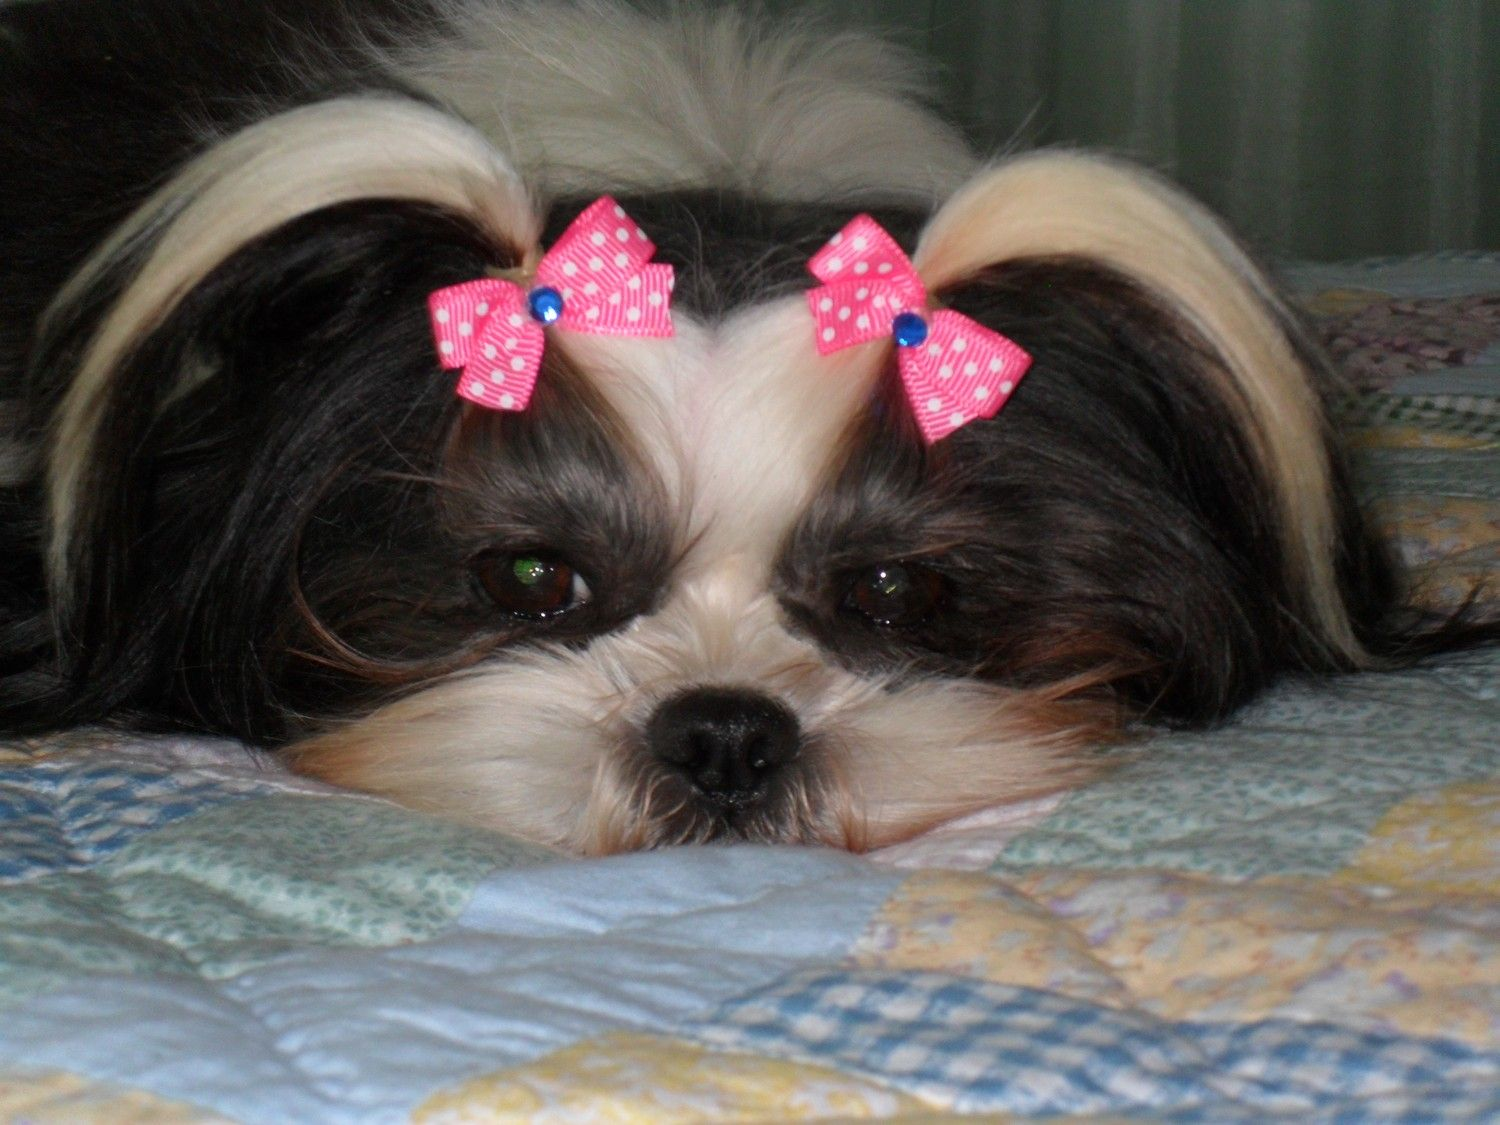 Puppy Dog Bows 20 X Small All Pairs Dog Bows Girl And Dog Puppies And Kitties